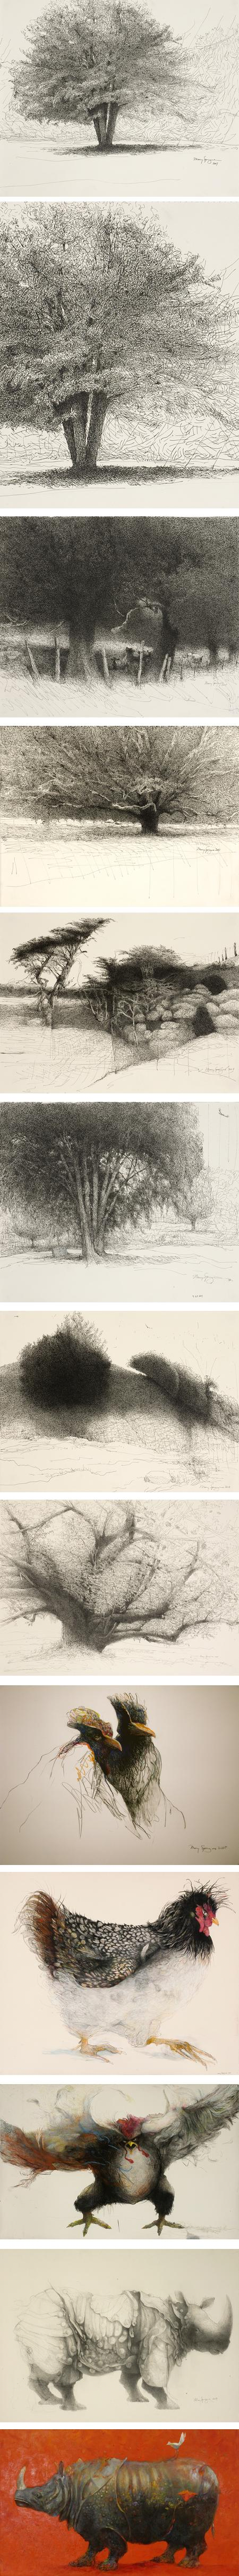 Mary Sprague, ink drawings, and watercolor of trees, chickens, rhinos